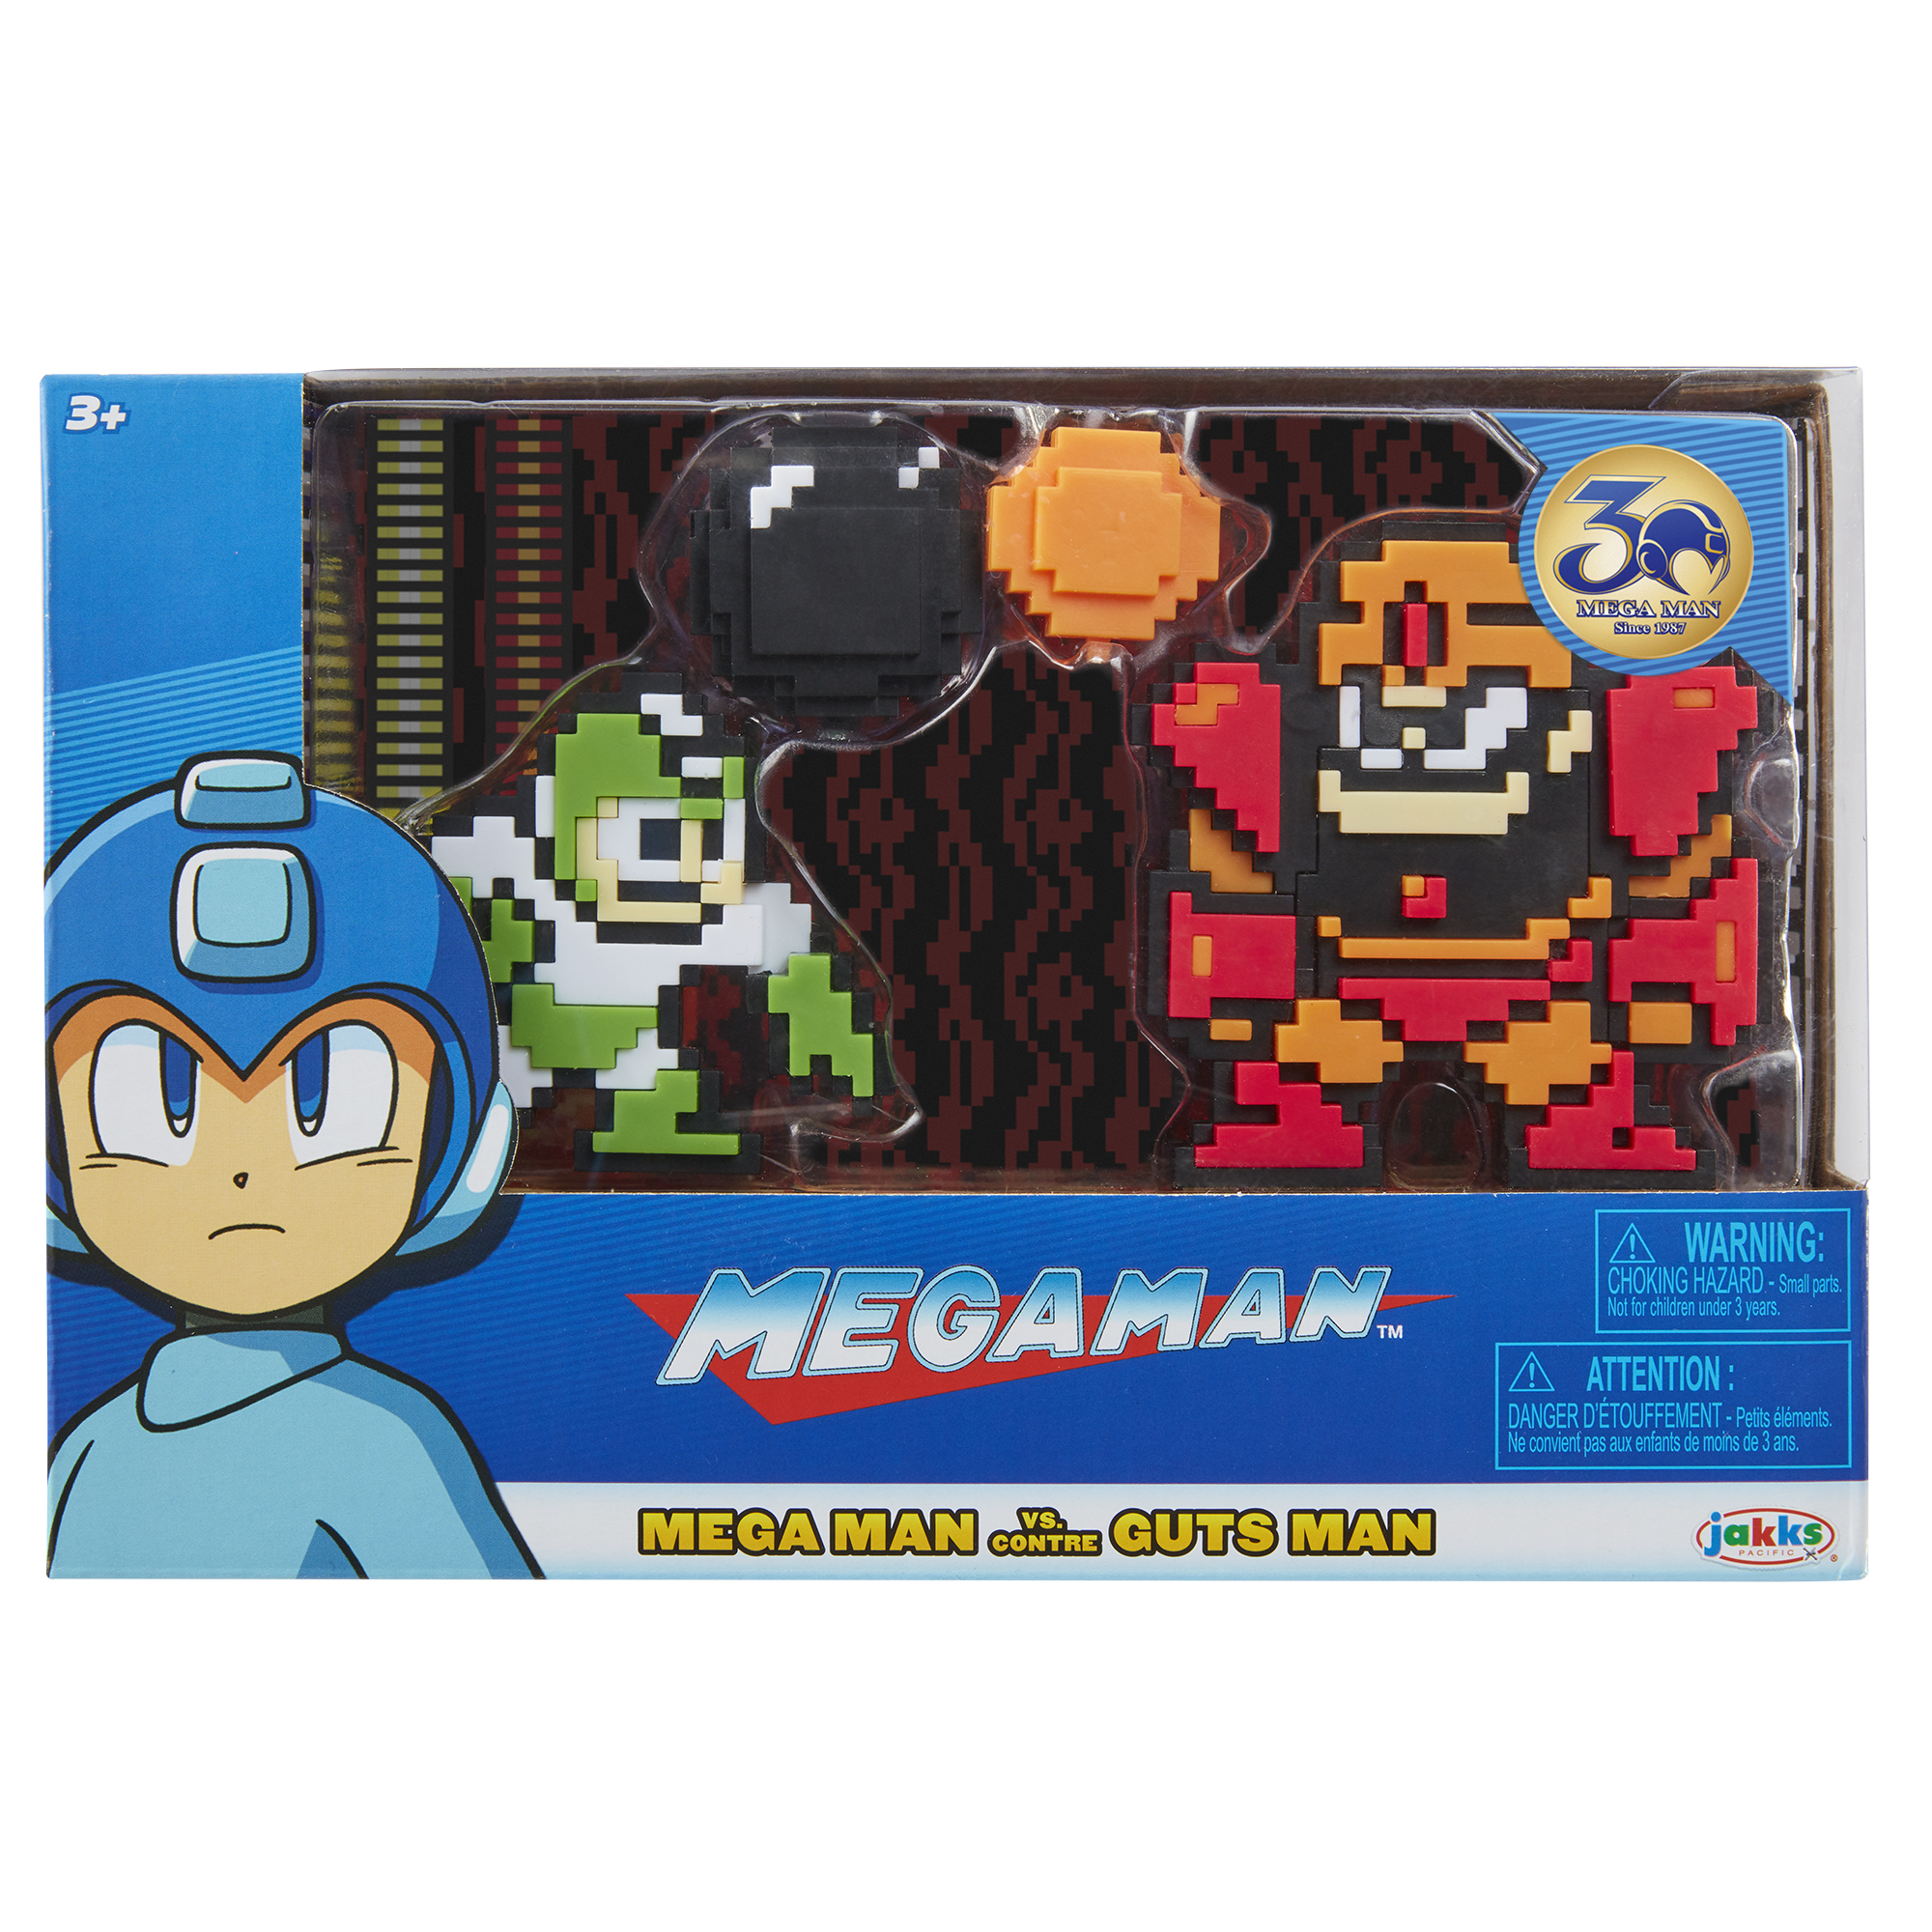 Mega Man - Green/White Mega Man v Guts Man